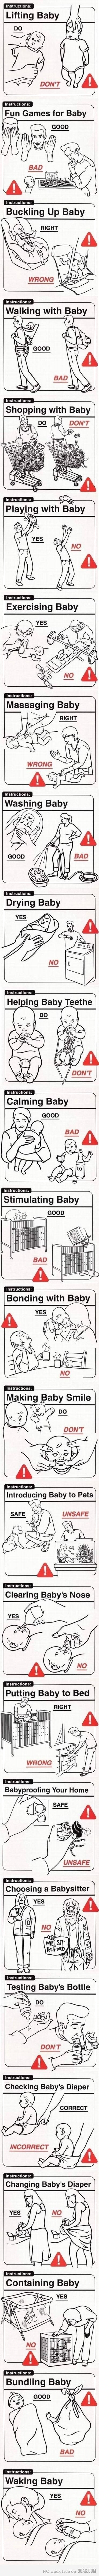 Instructions for Baby